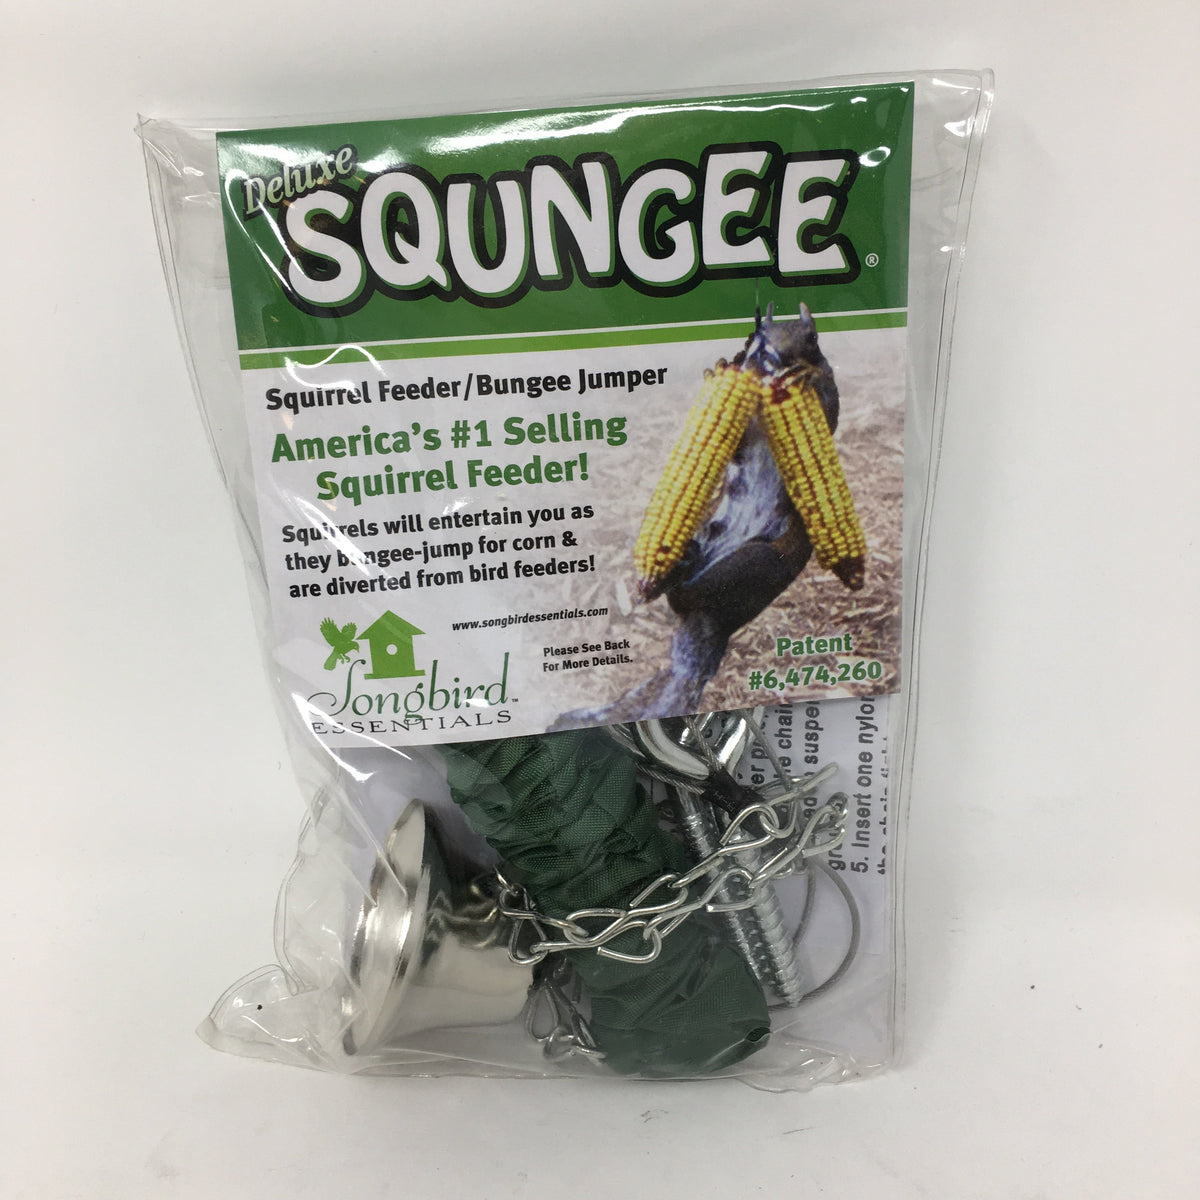 Deluxe Squngee